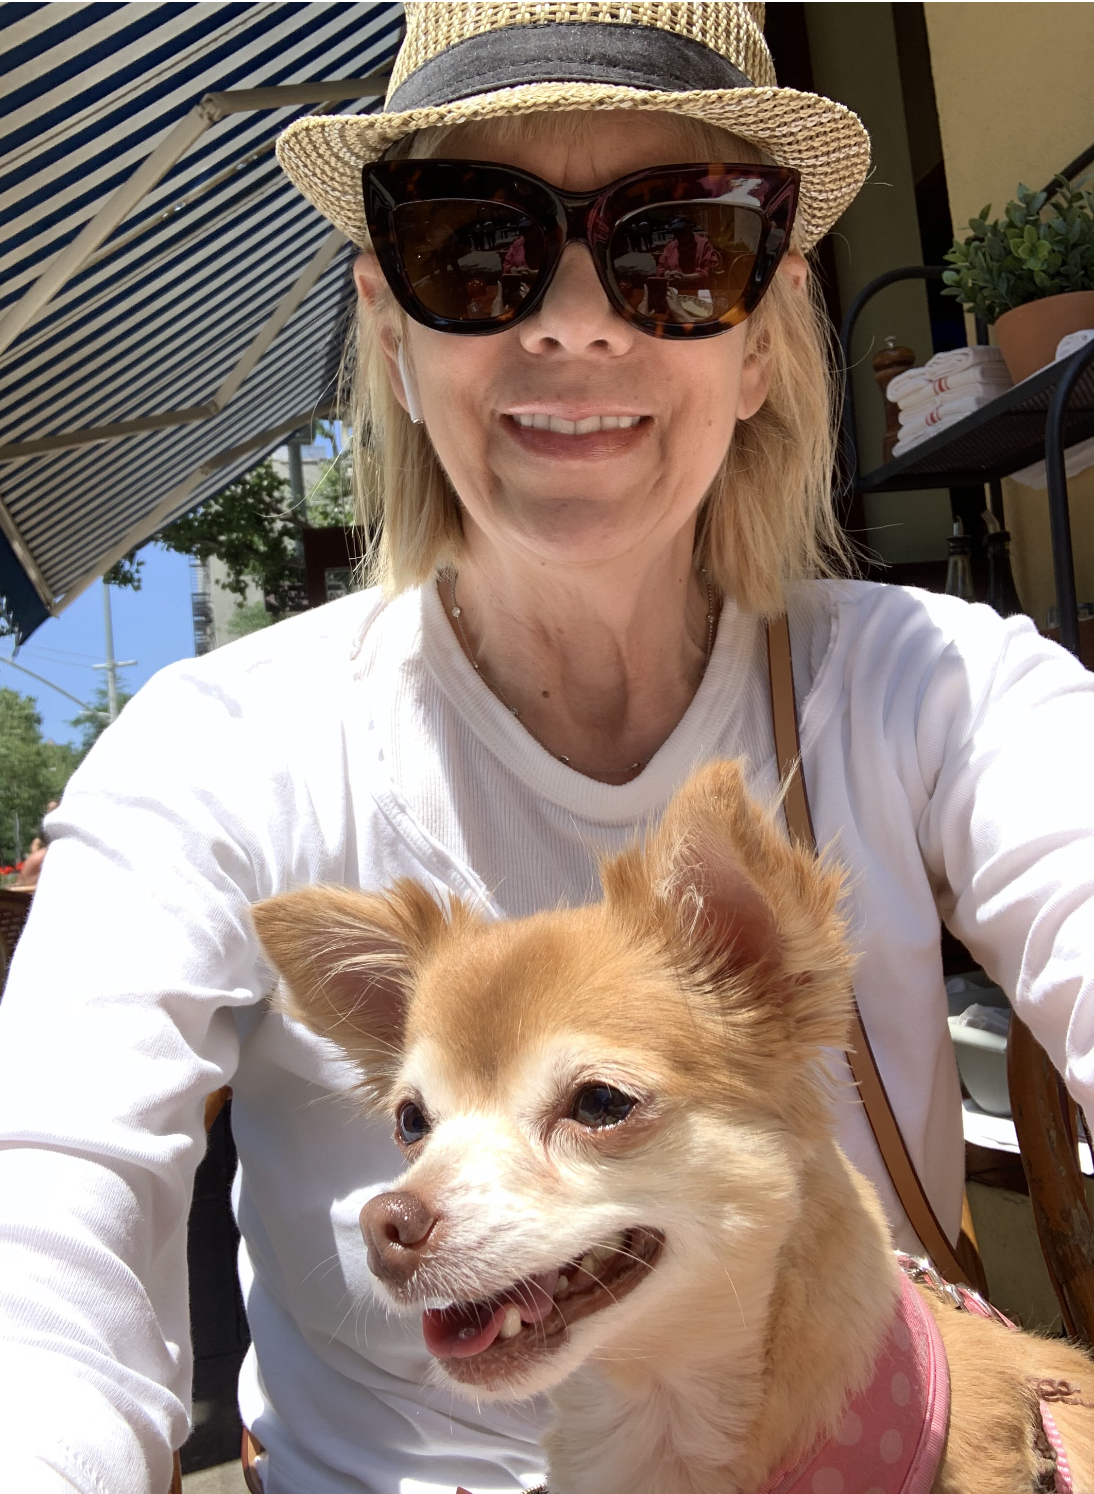 Woof rescue, Pippy, enjoys a day out with Shari!